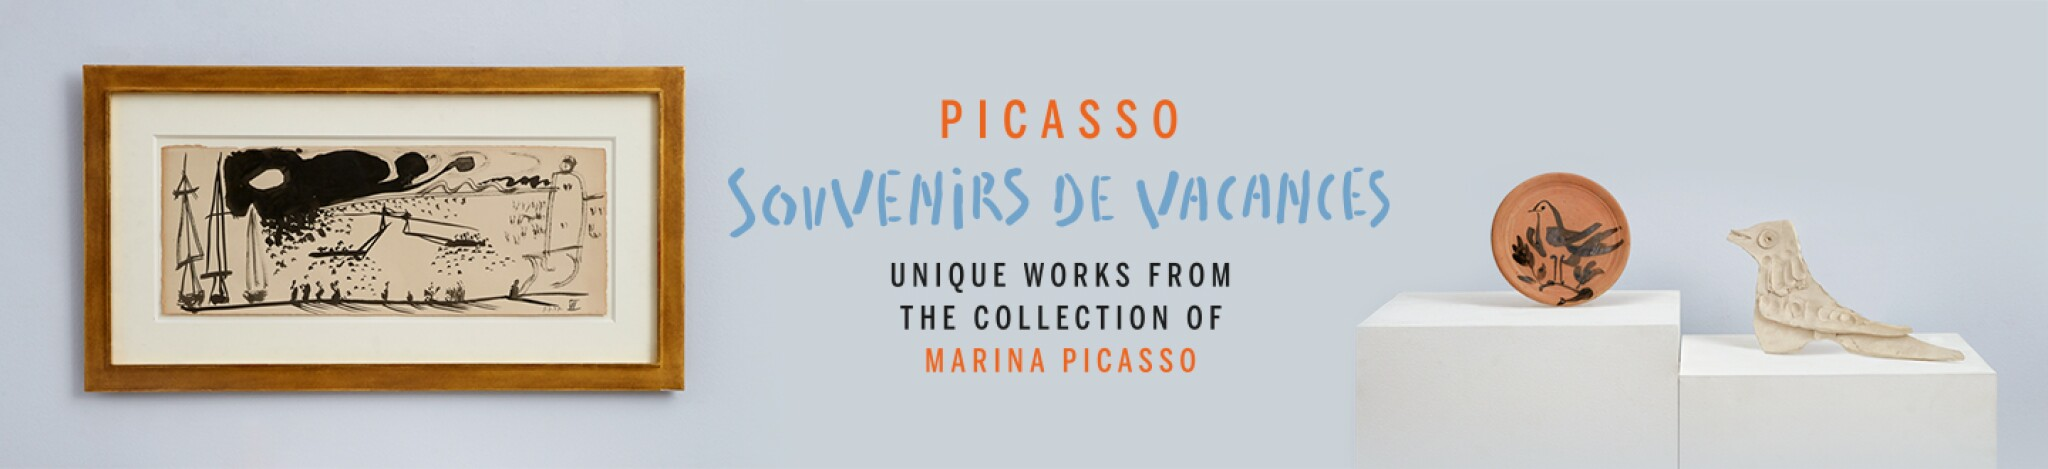 Pablo Picasso: Souvenirs de Vacances. Unique Works from the Collection of Marina Picasso. Online Sale.